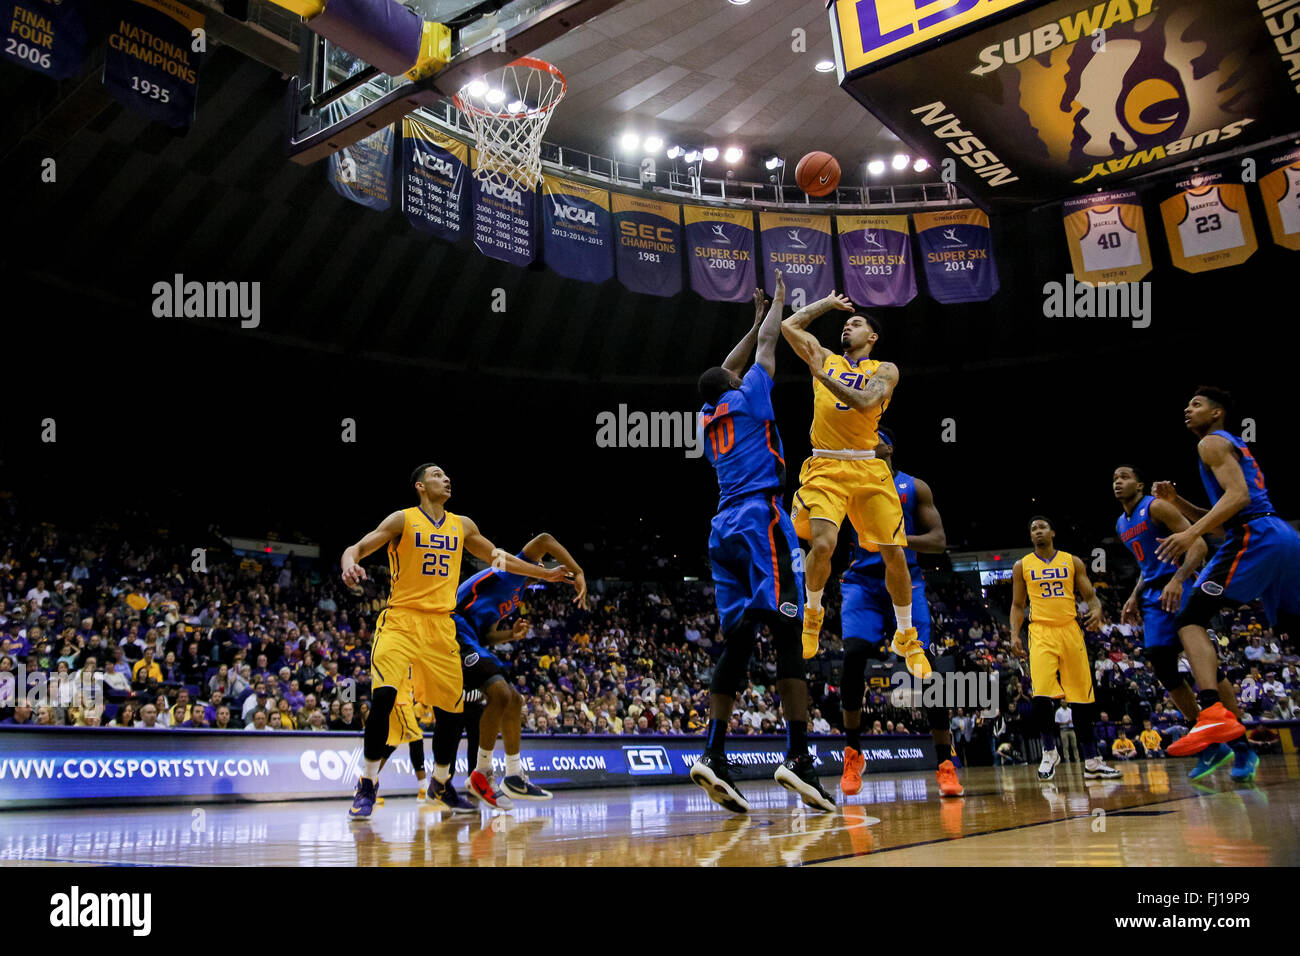 Baton Rouge, LA, USA. 27th Feb, 2016. LSU Tigers guard Josh Gray (5) shoots a jumpshot during an NCAA basketball - Stock Image